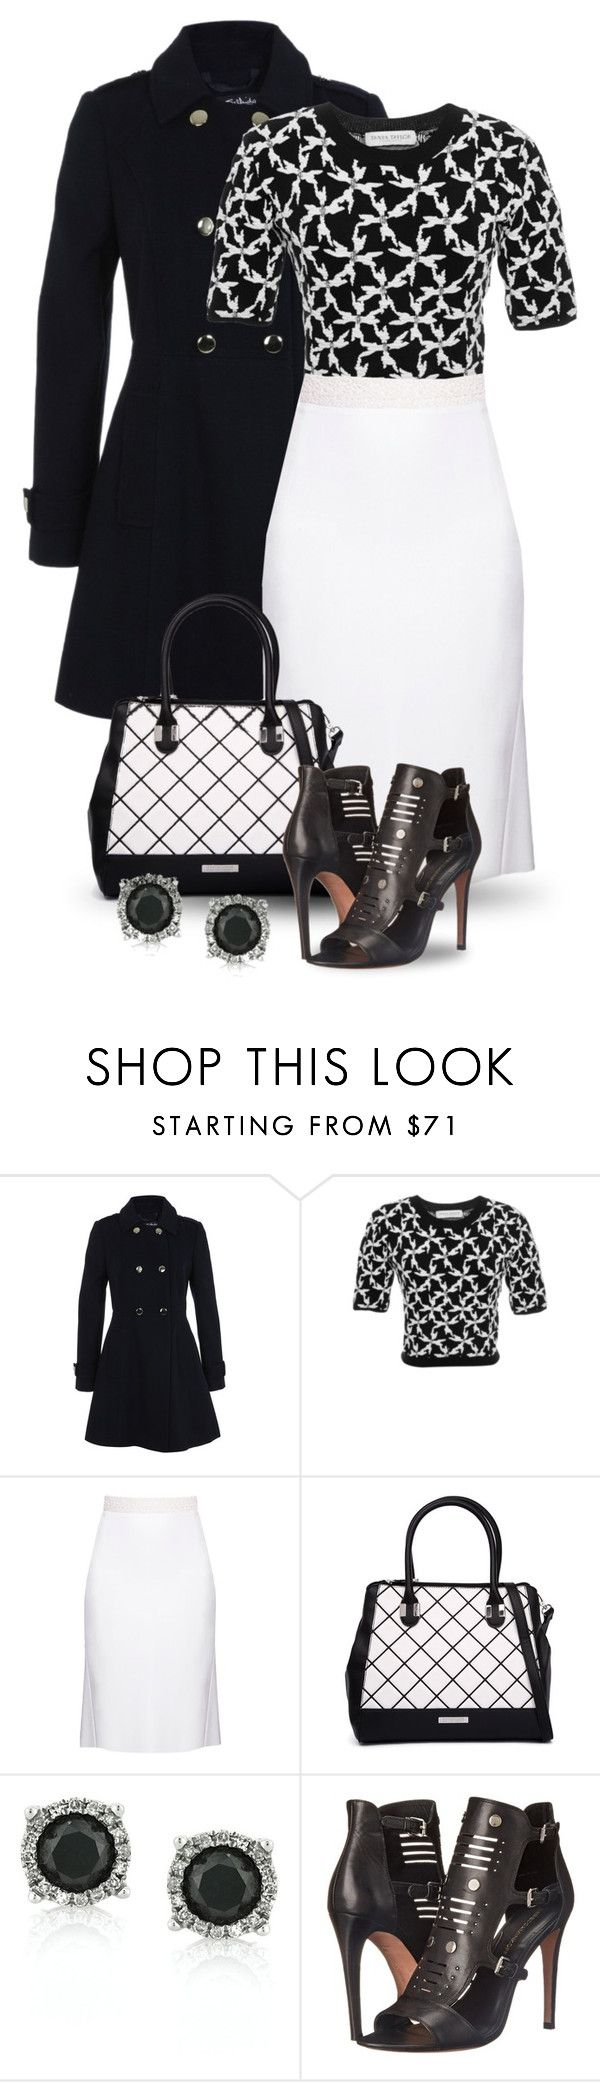 """Style It in Black & White!"" by boxthoughts ❤ liked on Polyvore featuring Miss Selfridge, Tanya Taylor, Victor Xenia, Kardashian Kollection, Mark Broumand, Rebecca Minkoff, women's clothing, women, female and woman"